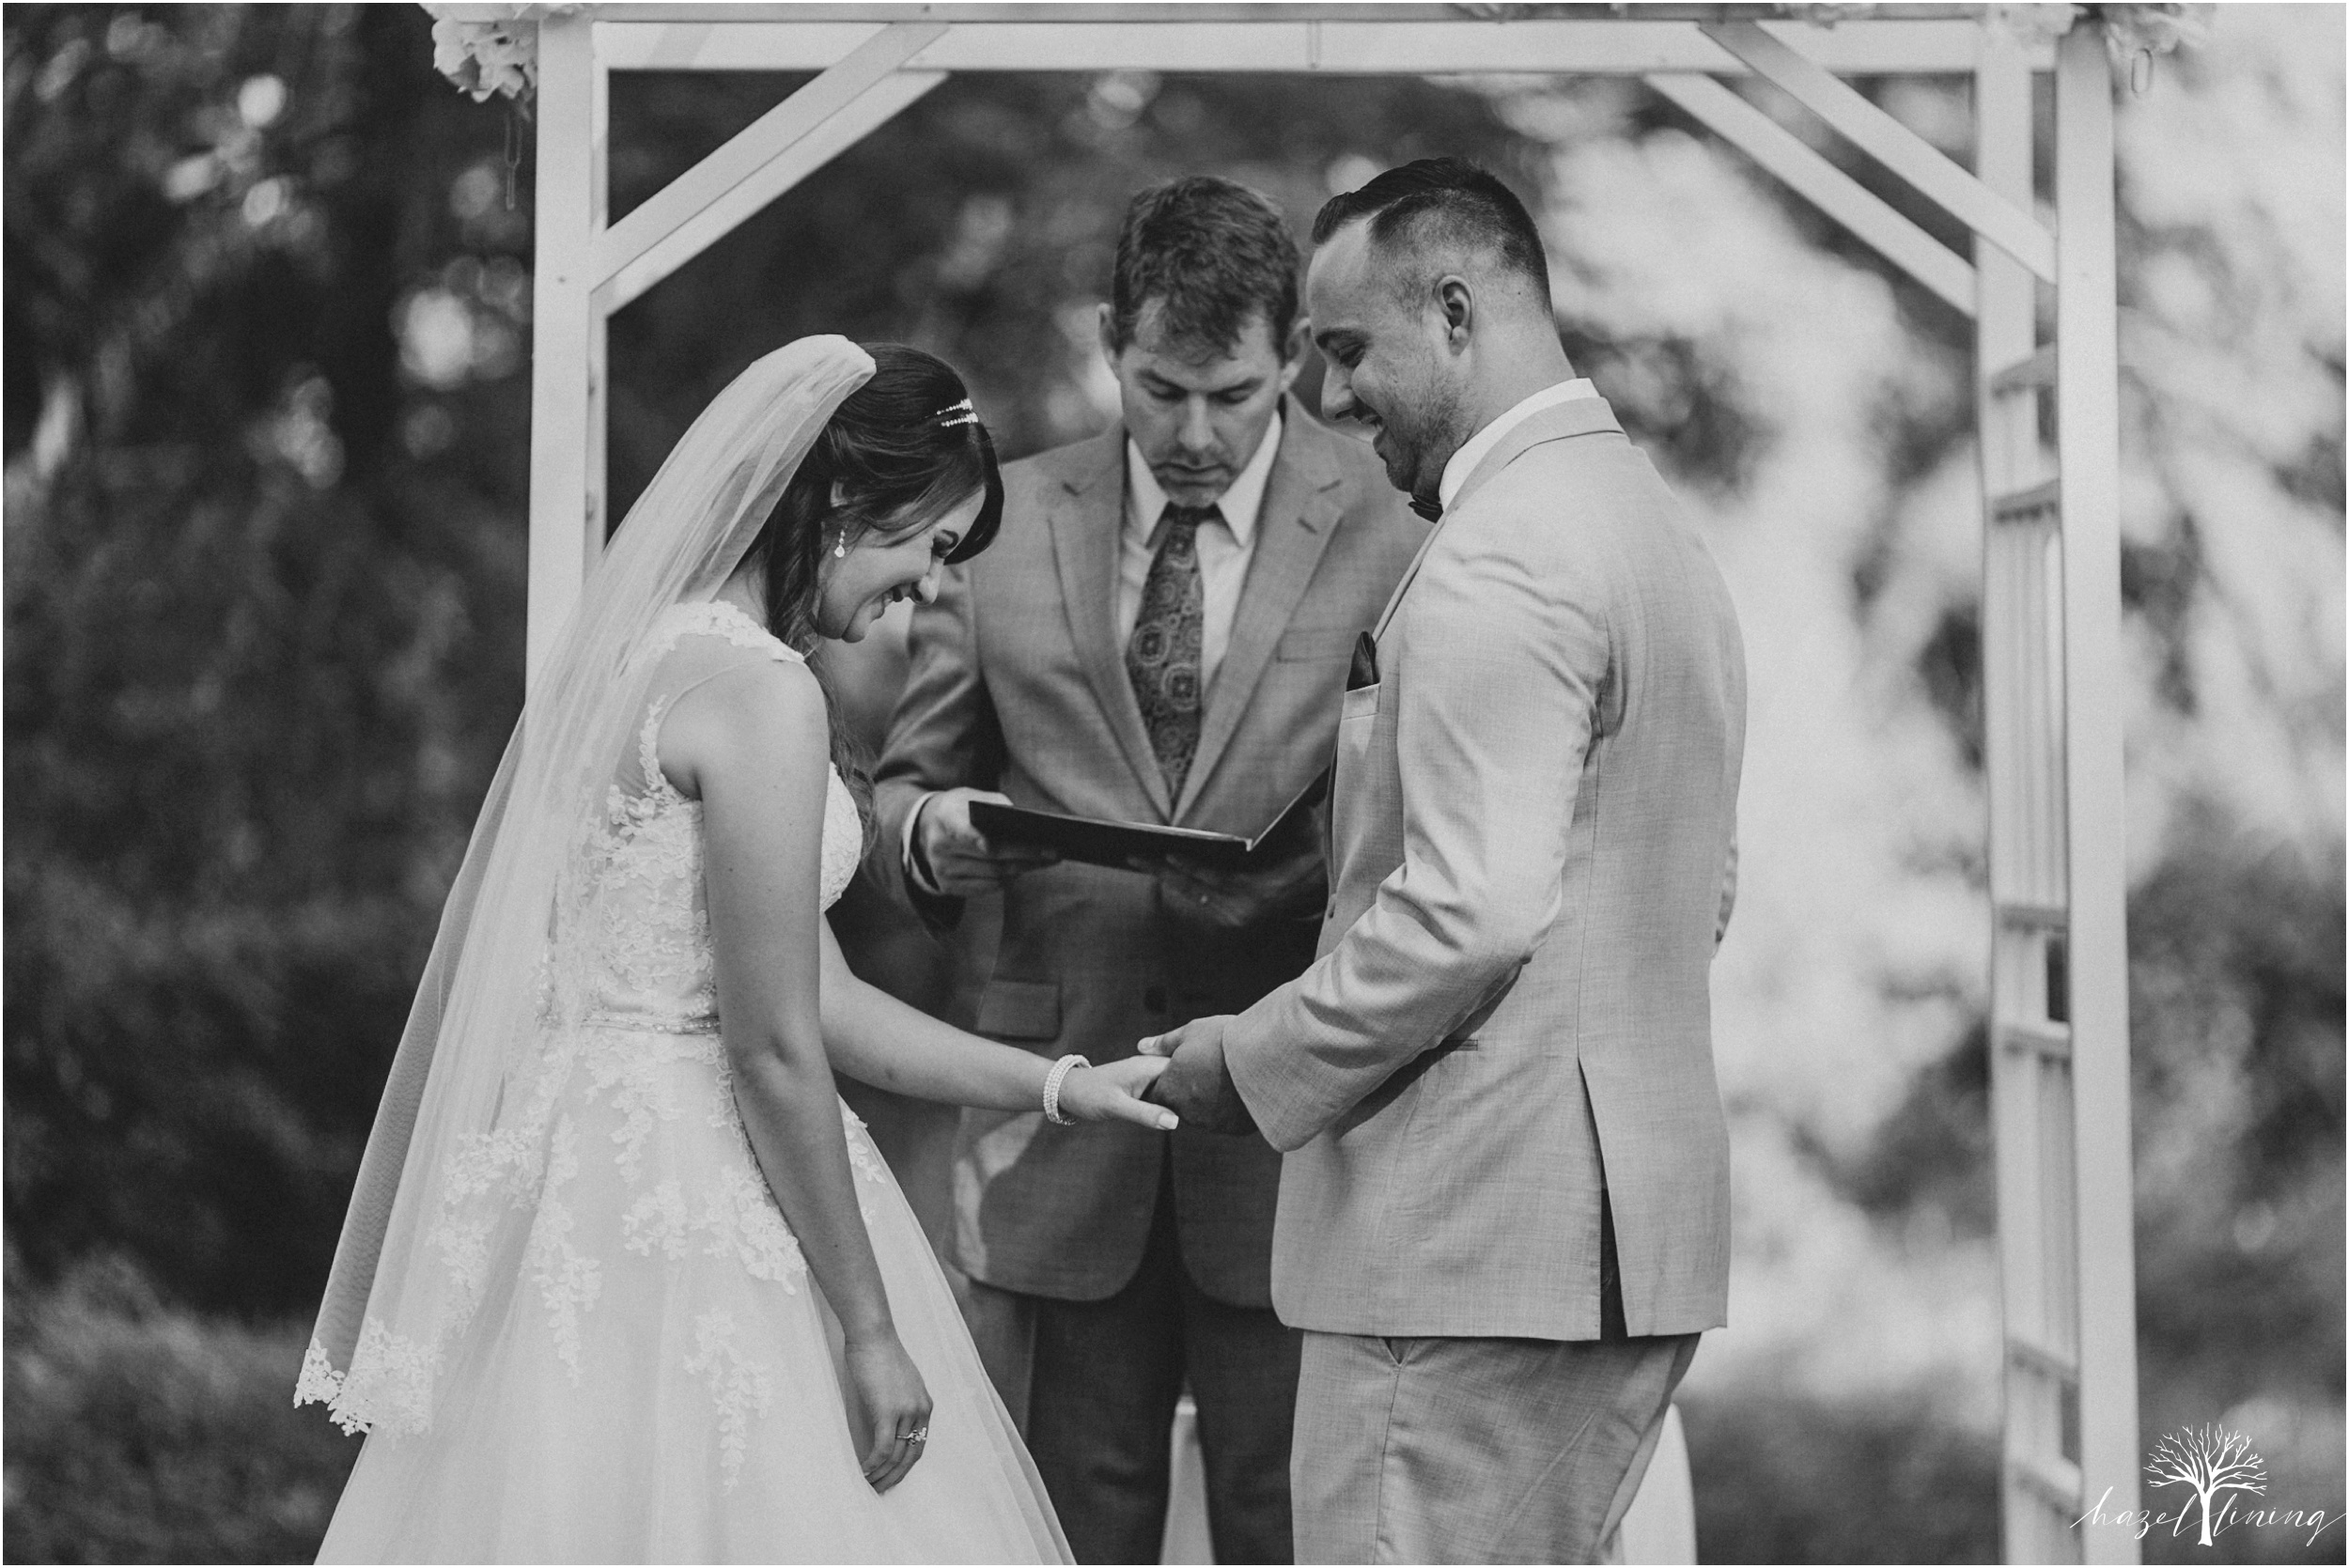 cassie-depinto-tyler-bodder-playwicki-farm-buck-hotel-featserville-trevose-pennsylvania-summer-outdoor-wedding-hazel-lining-travel-wedding-elopement-photography_0215.jpg